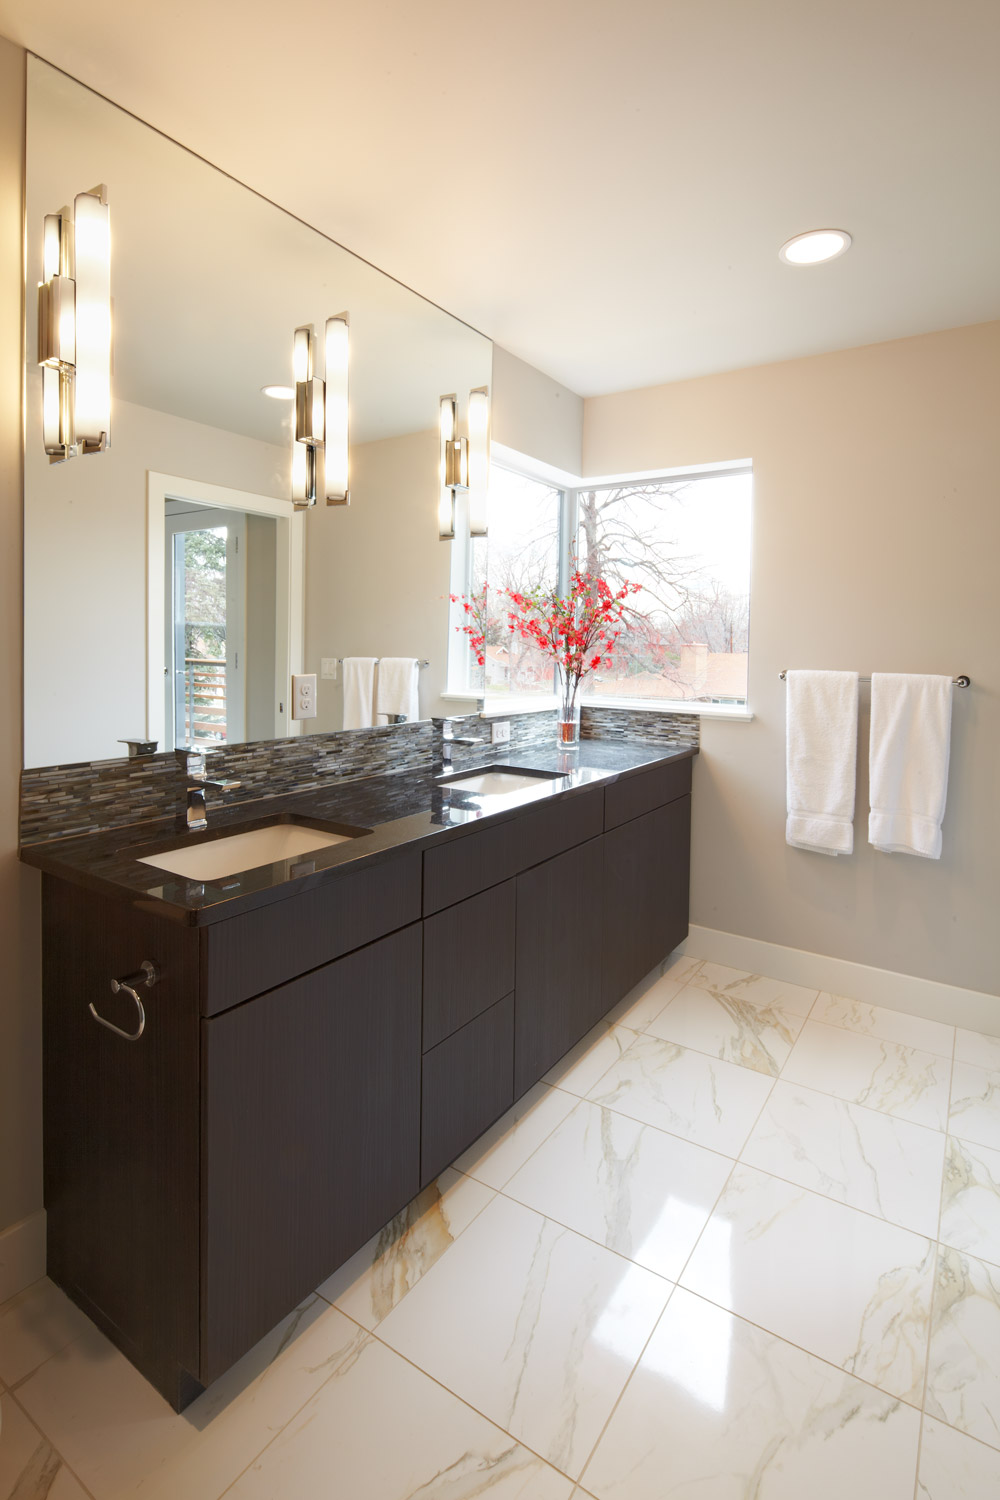 Race - modern duplex denver bathroom